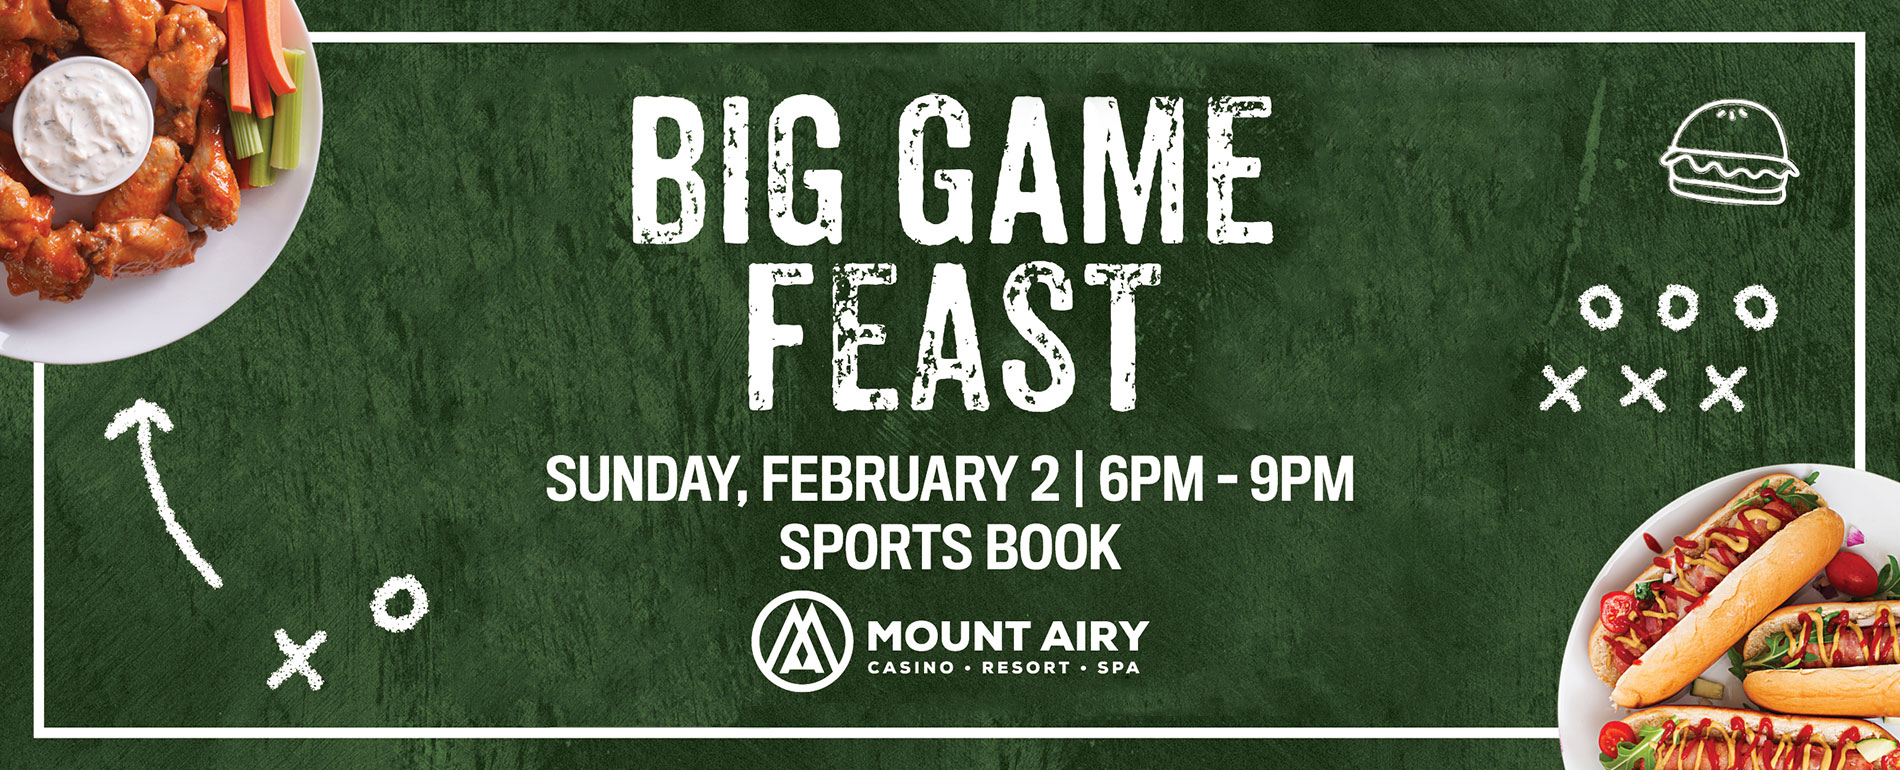 Mt Pocono Football Game - The Big Game Feast Buffet Party